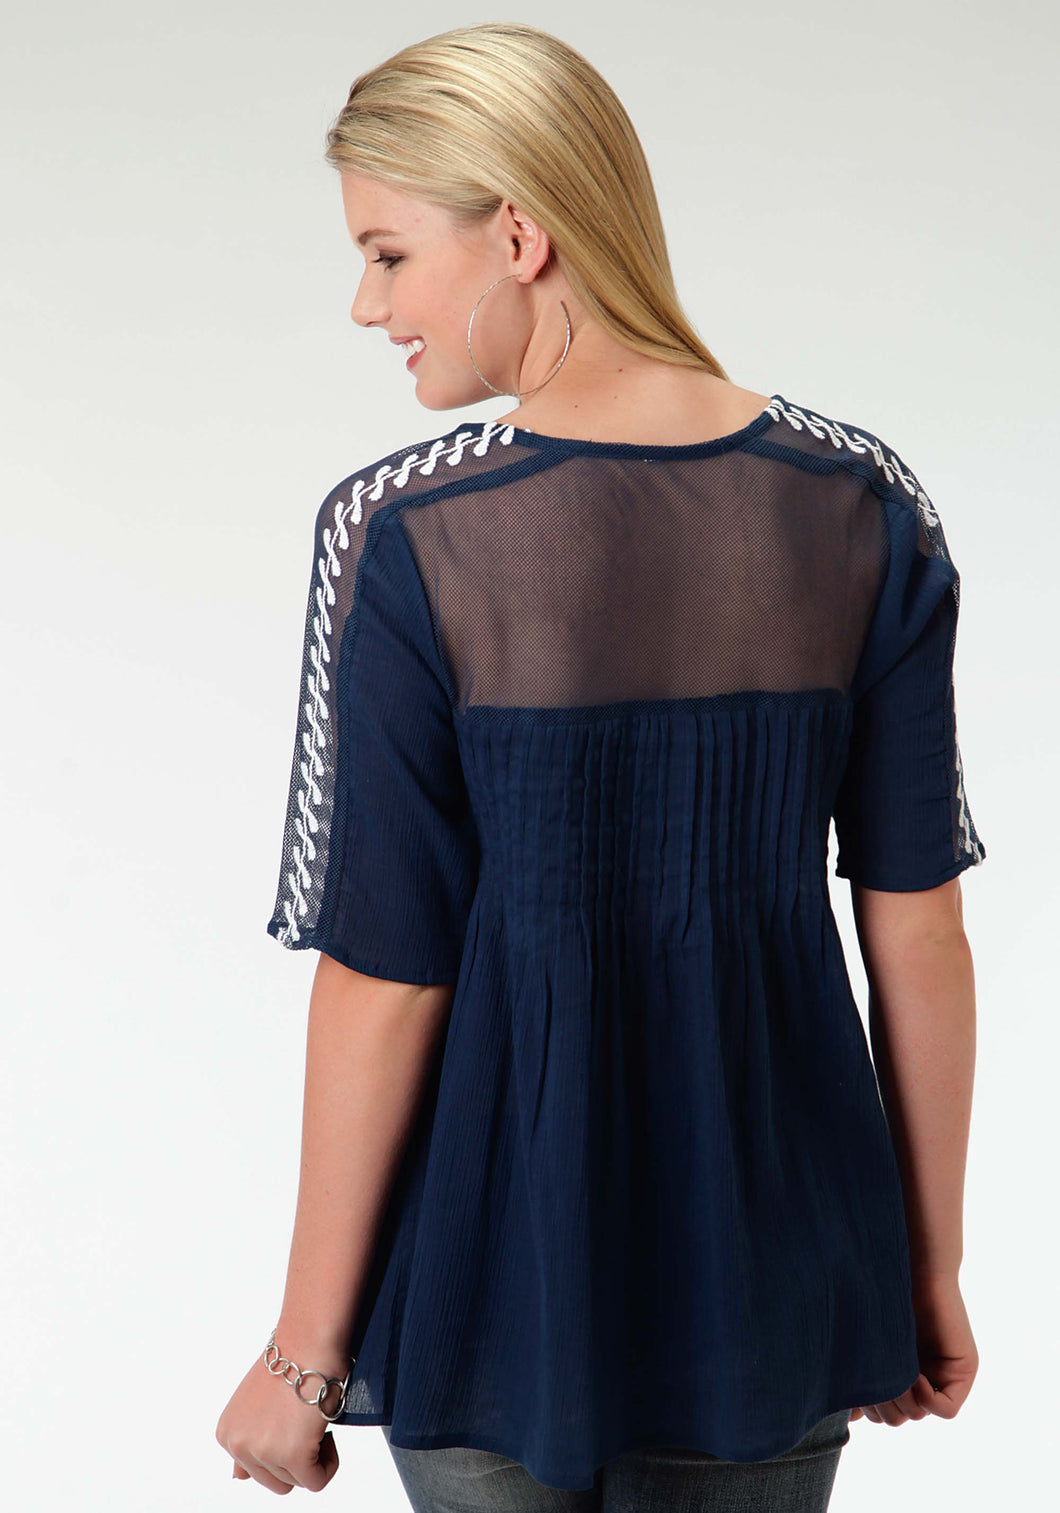 Studio West- Blue Gypsy Swest Womens Short Sleeve Shirt 0895 Cotton Crepe Tucked Blouse